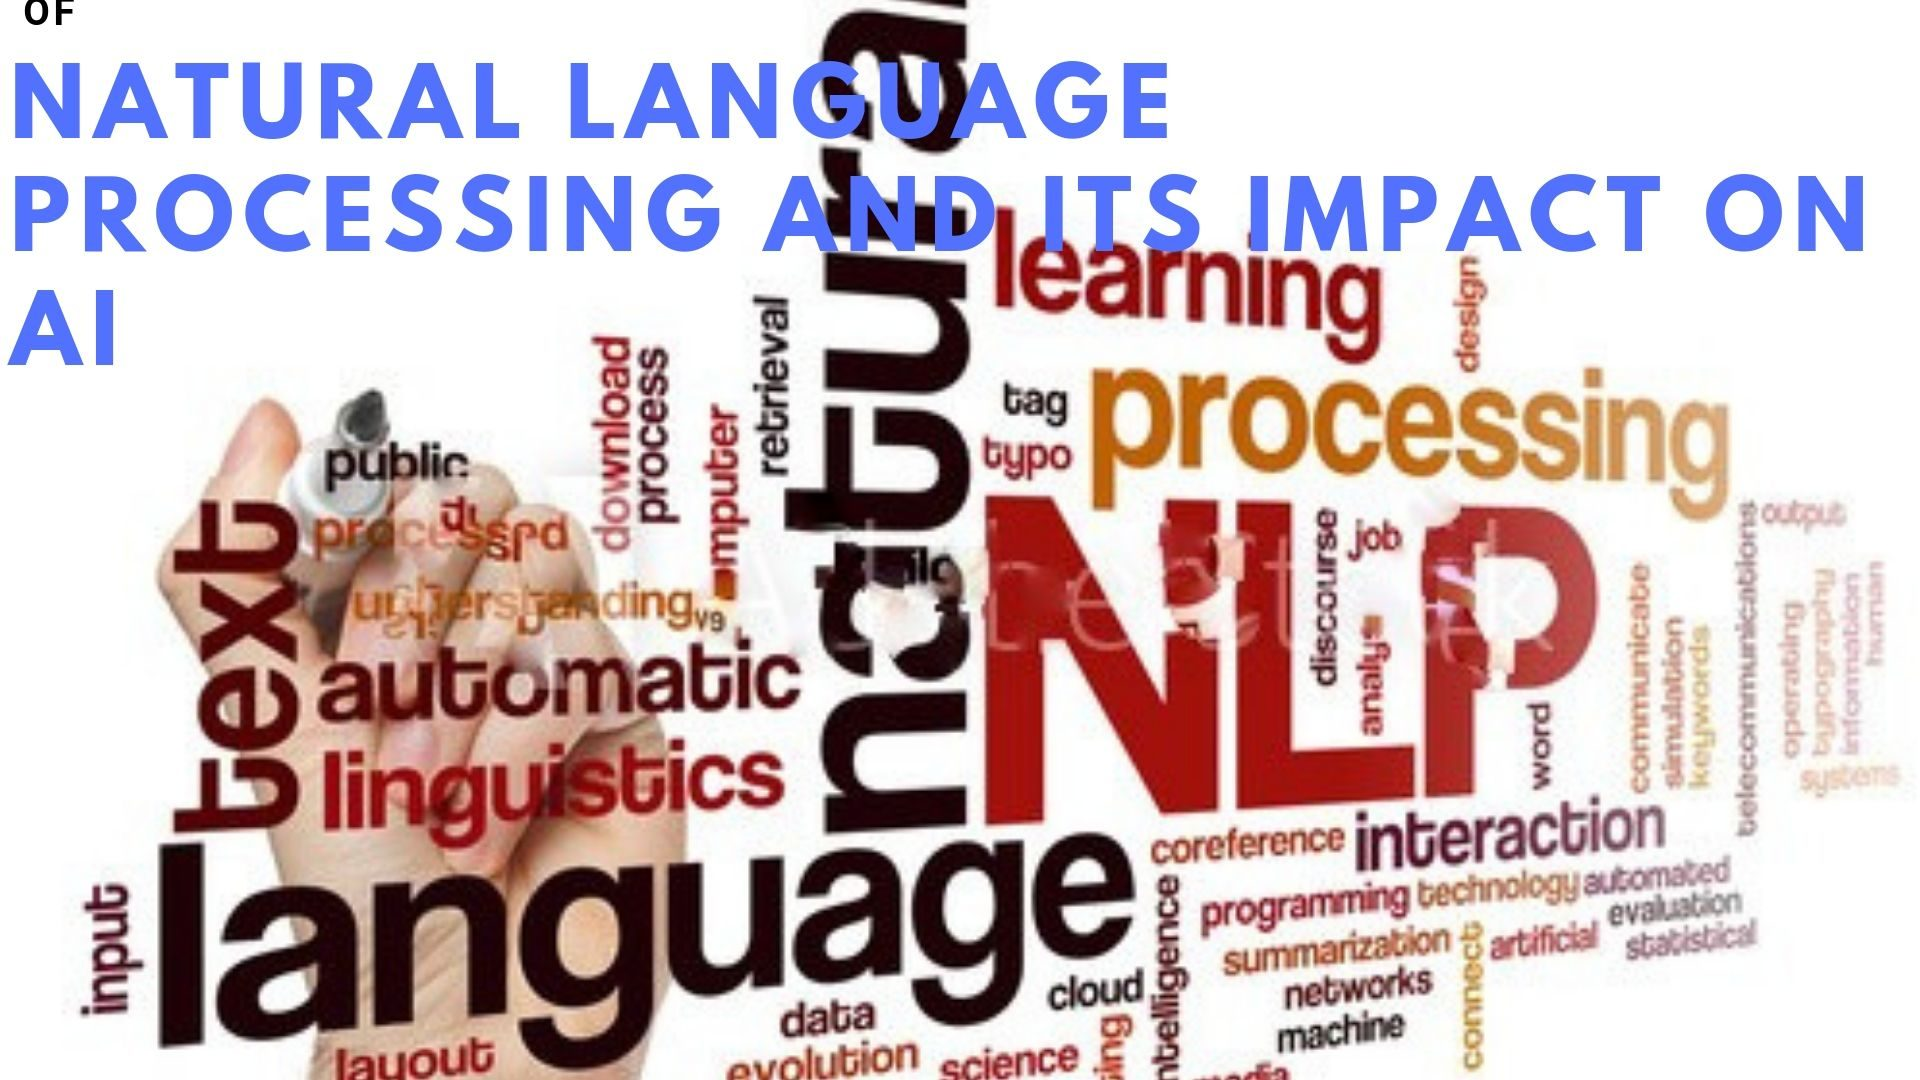 Impact of Natural Language Processing On AI